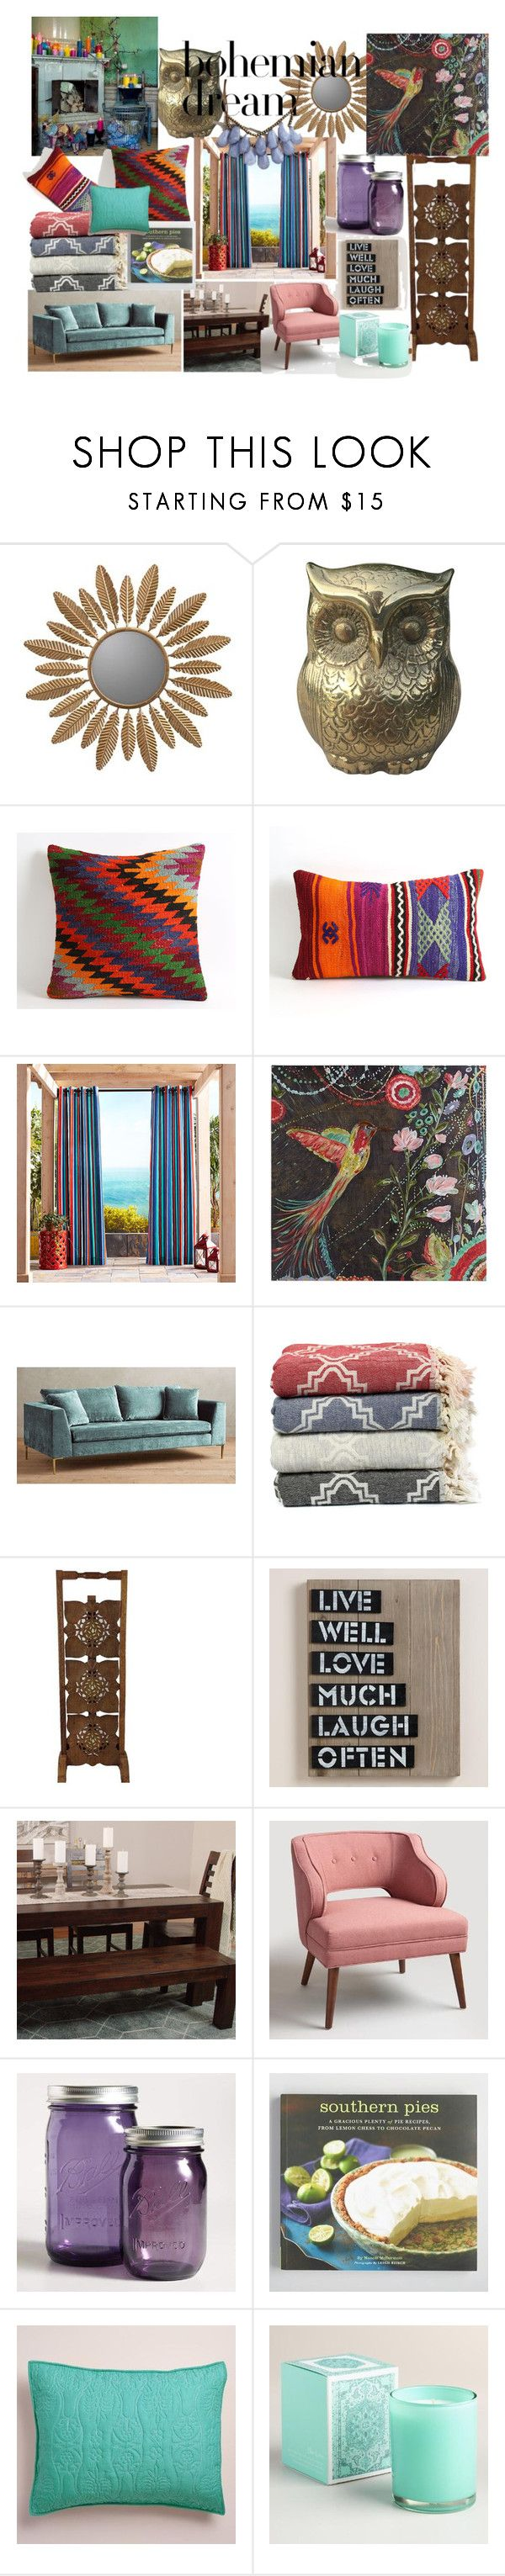 """Colorful Dream"" by sallytcrosswell on Polyvore featuring interior, interiors, interior design, home, home decor, interior decorating, Cooper Classics, Pier 1 Imports, Anthropologie and Cost Plus World Market"